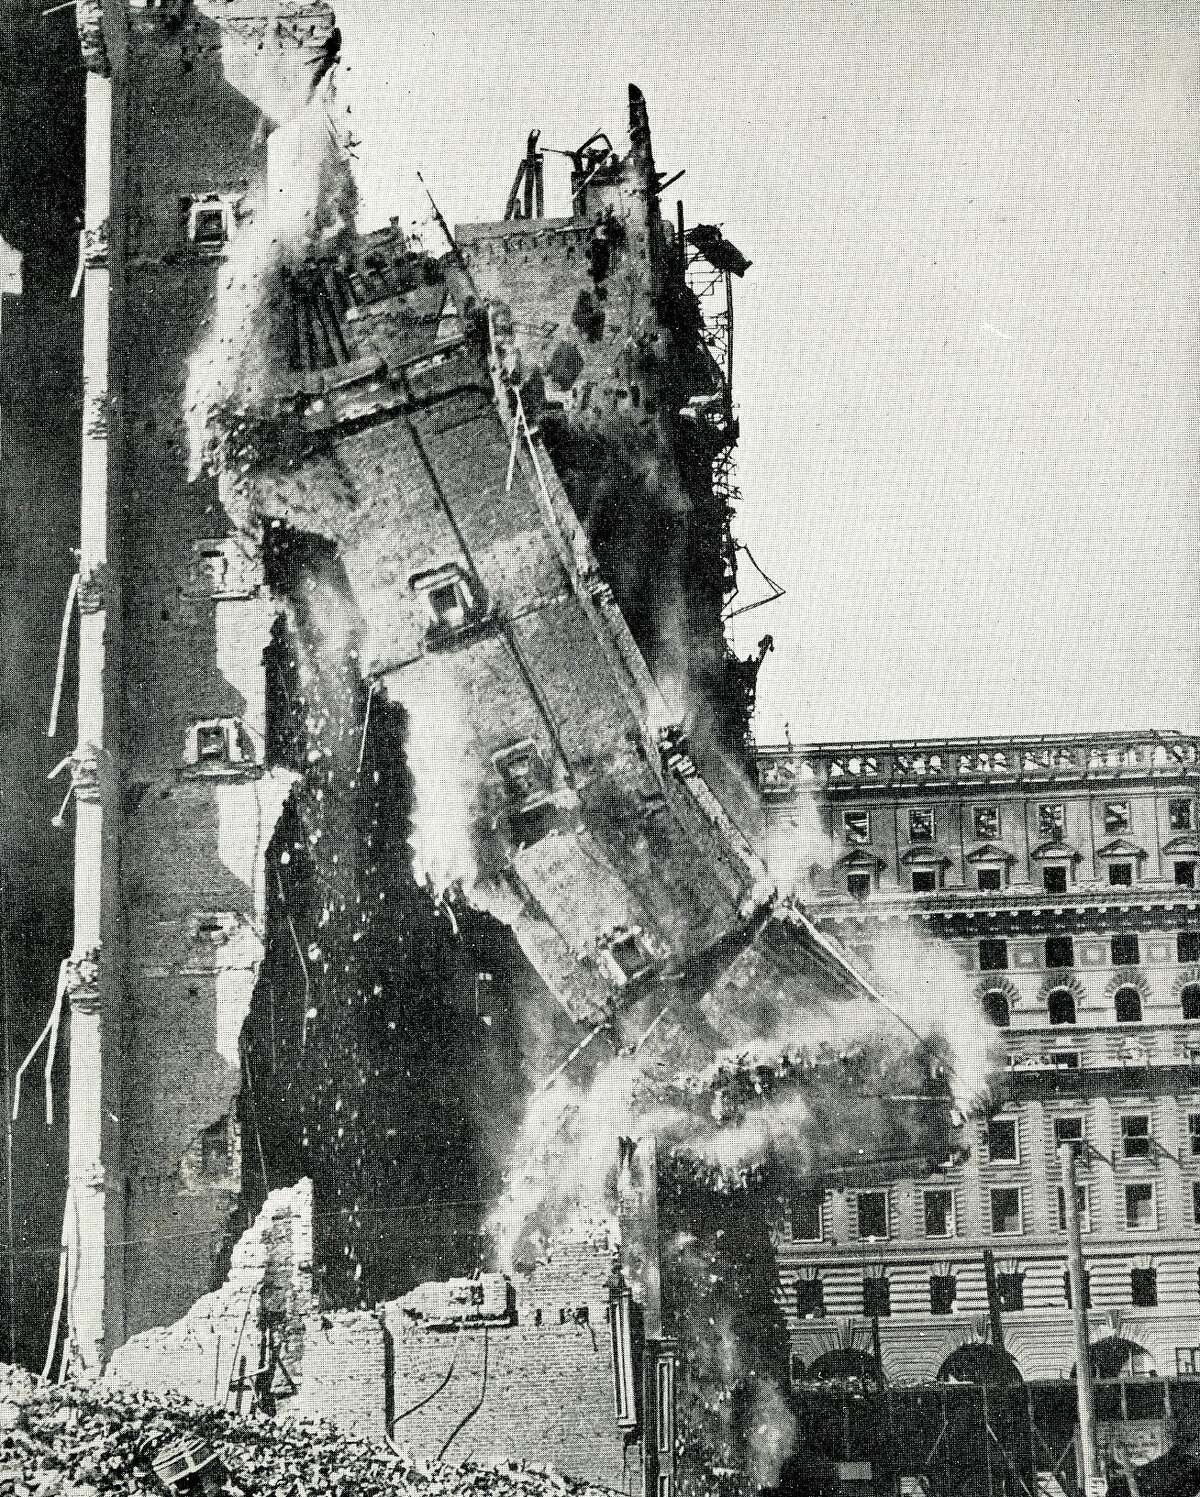 Razing the walls of the old Palace Hotel, one of the most spectacular photographs taken during the rebuilding of San Francisco. These walls were pulled down with wire cables operated by donkey engine.